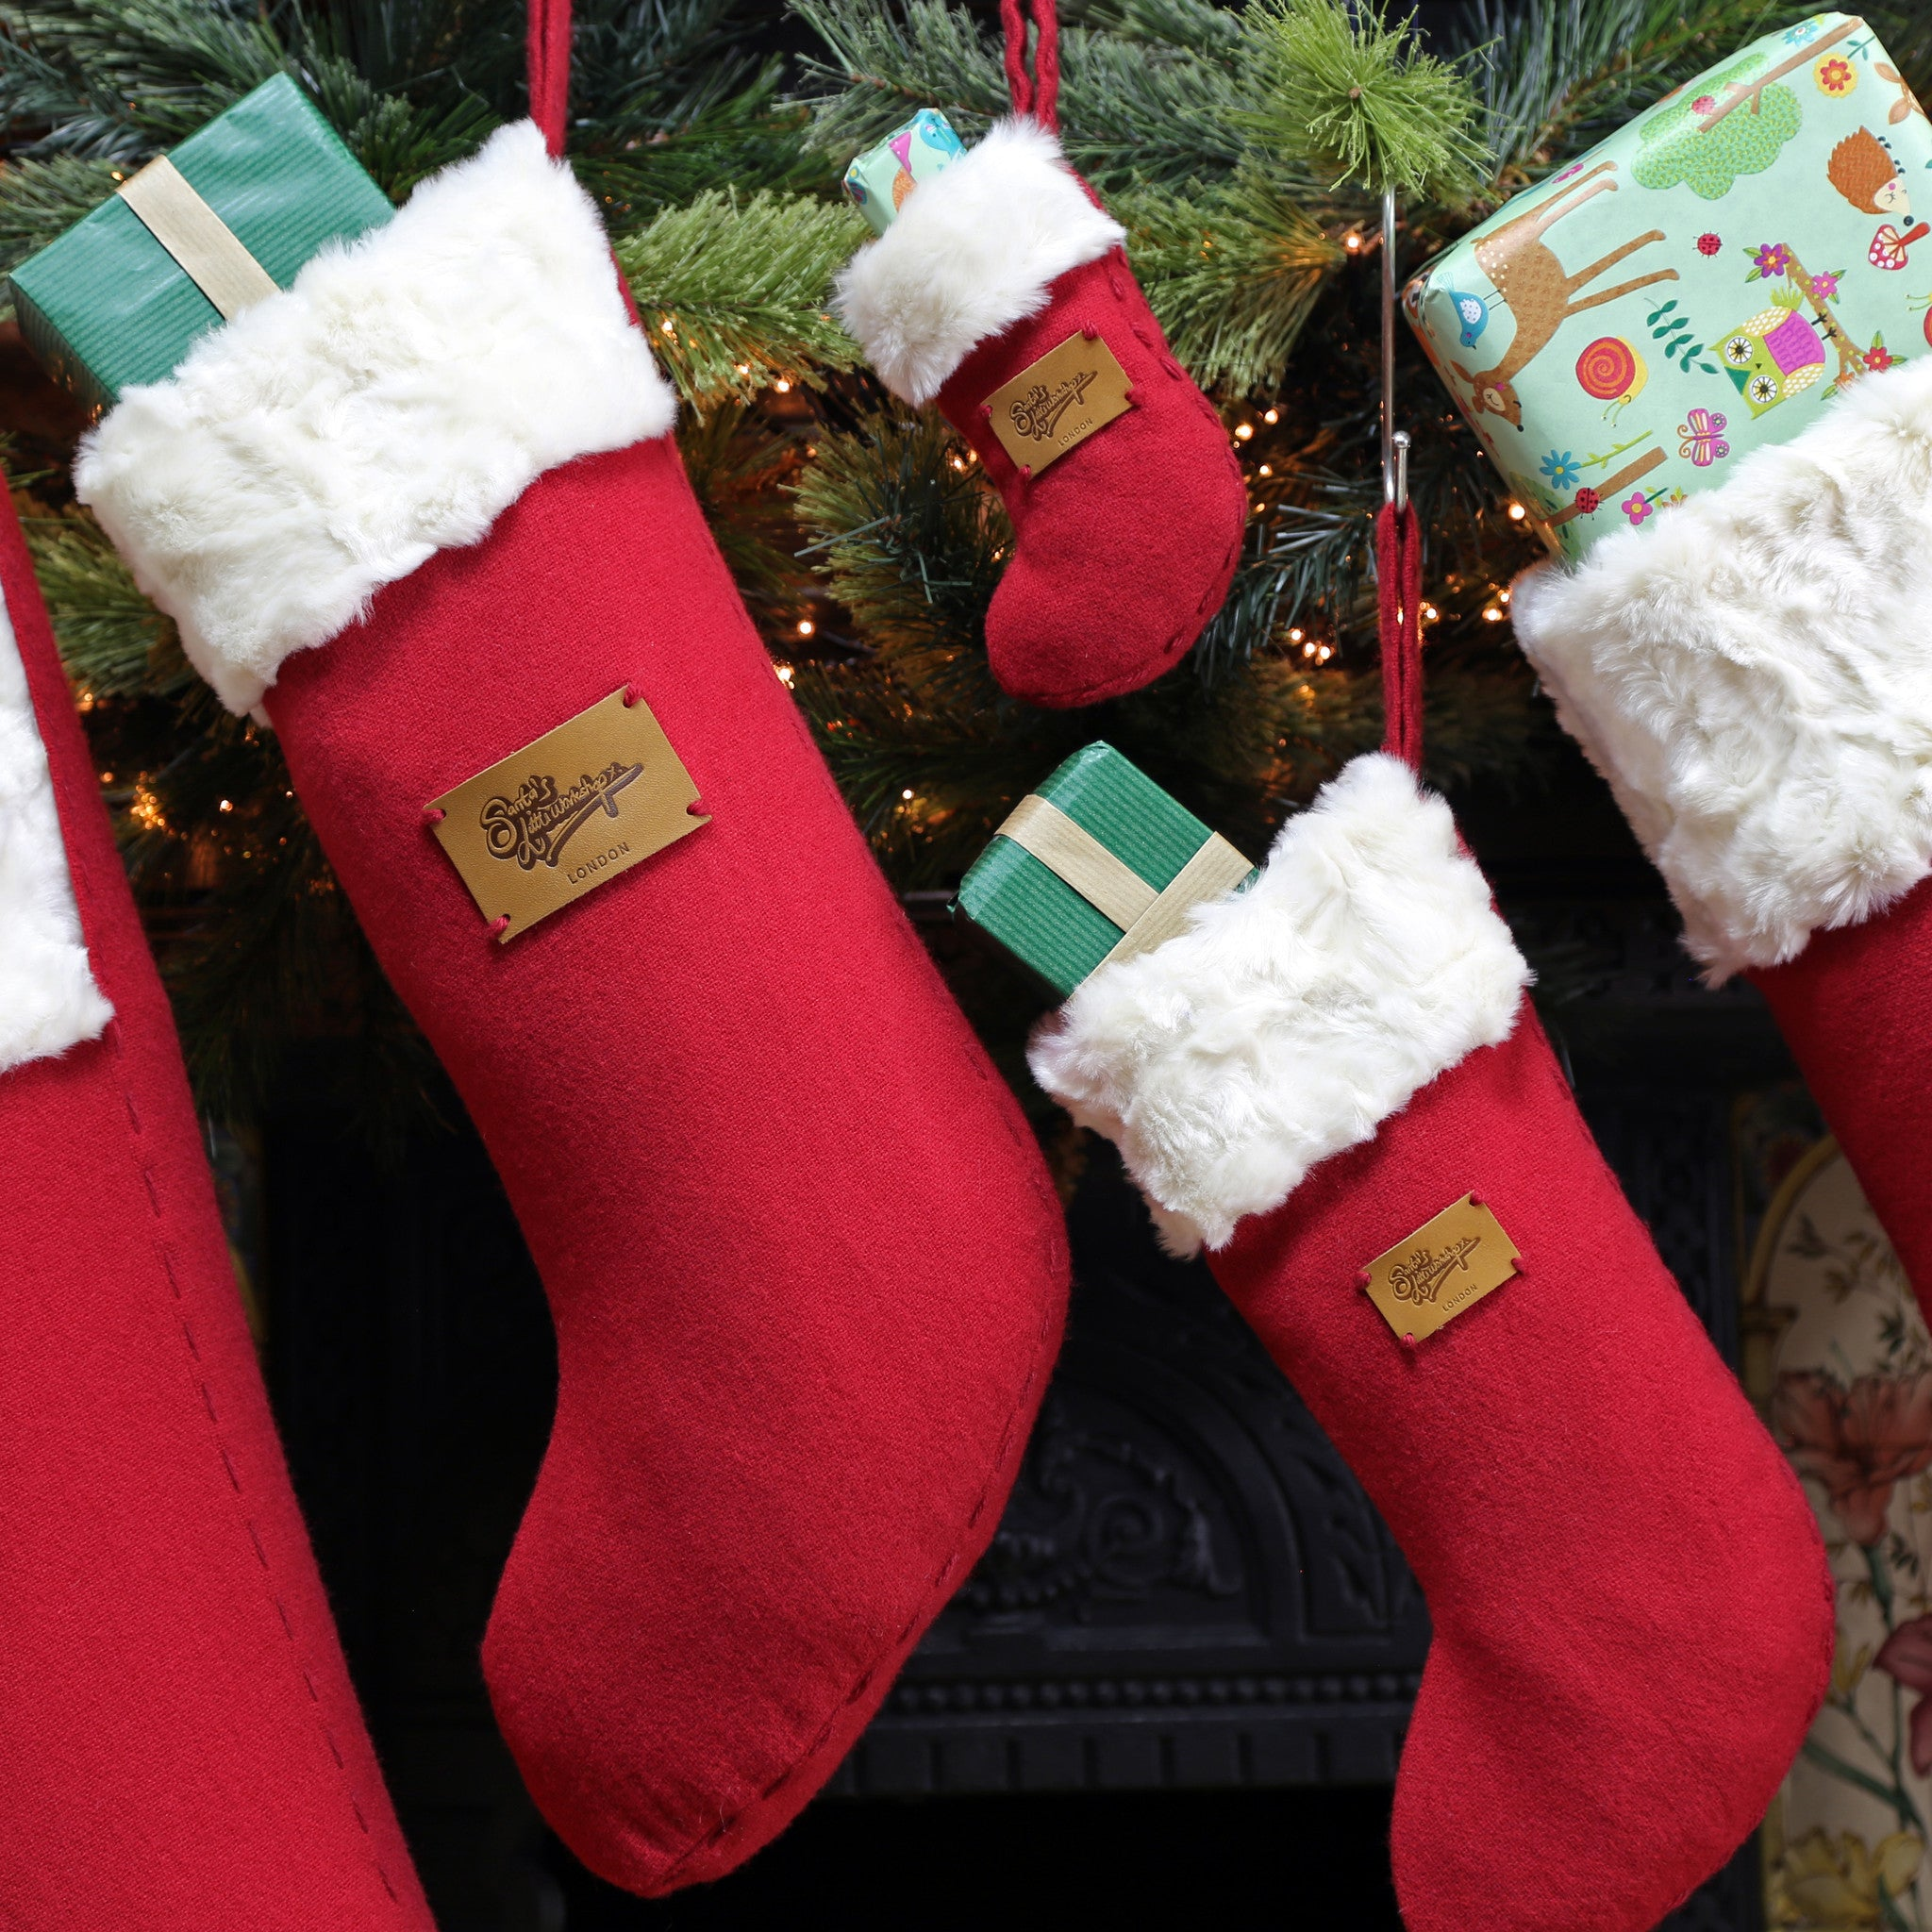 Set Of 5 Luxury Christmas Stockings Santa S Little Workshop